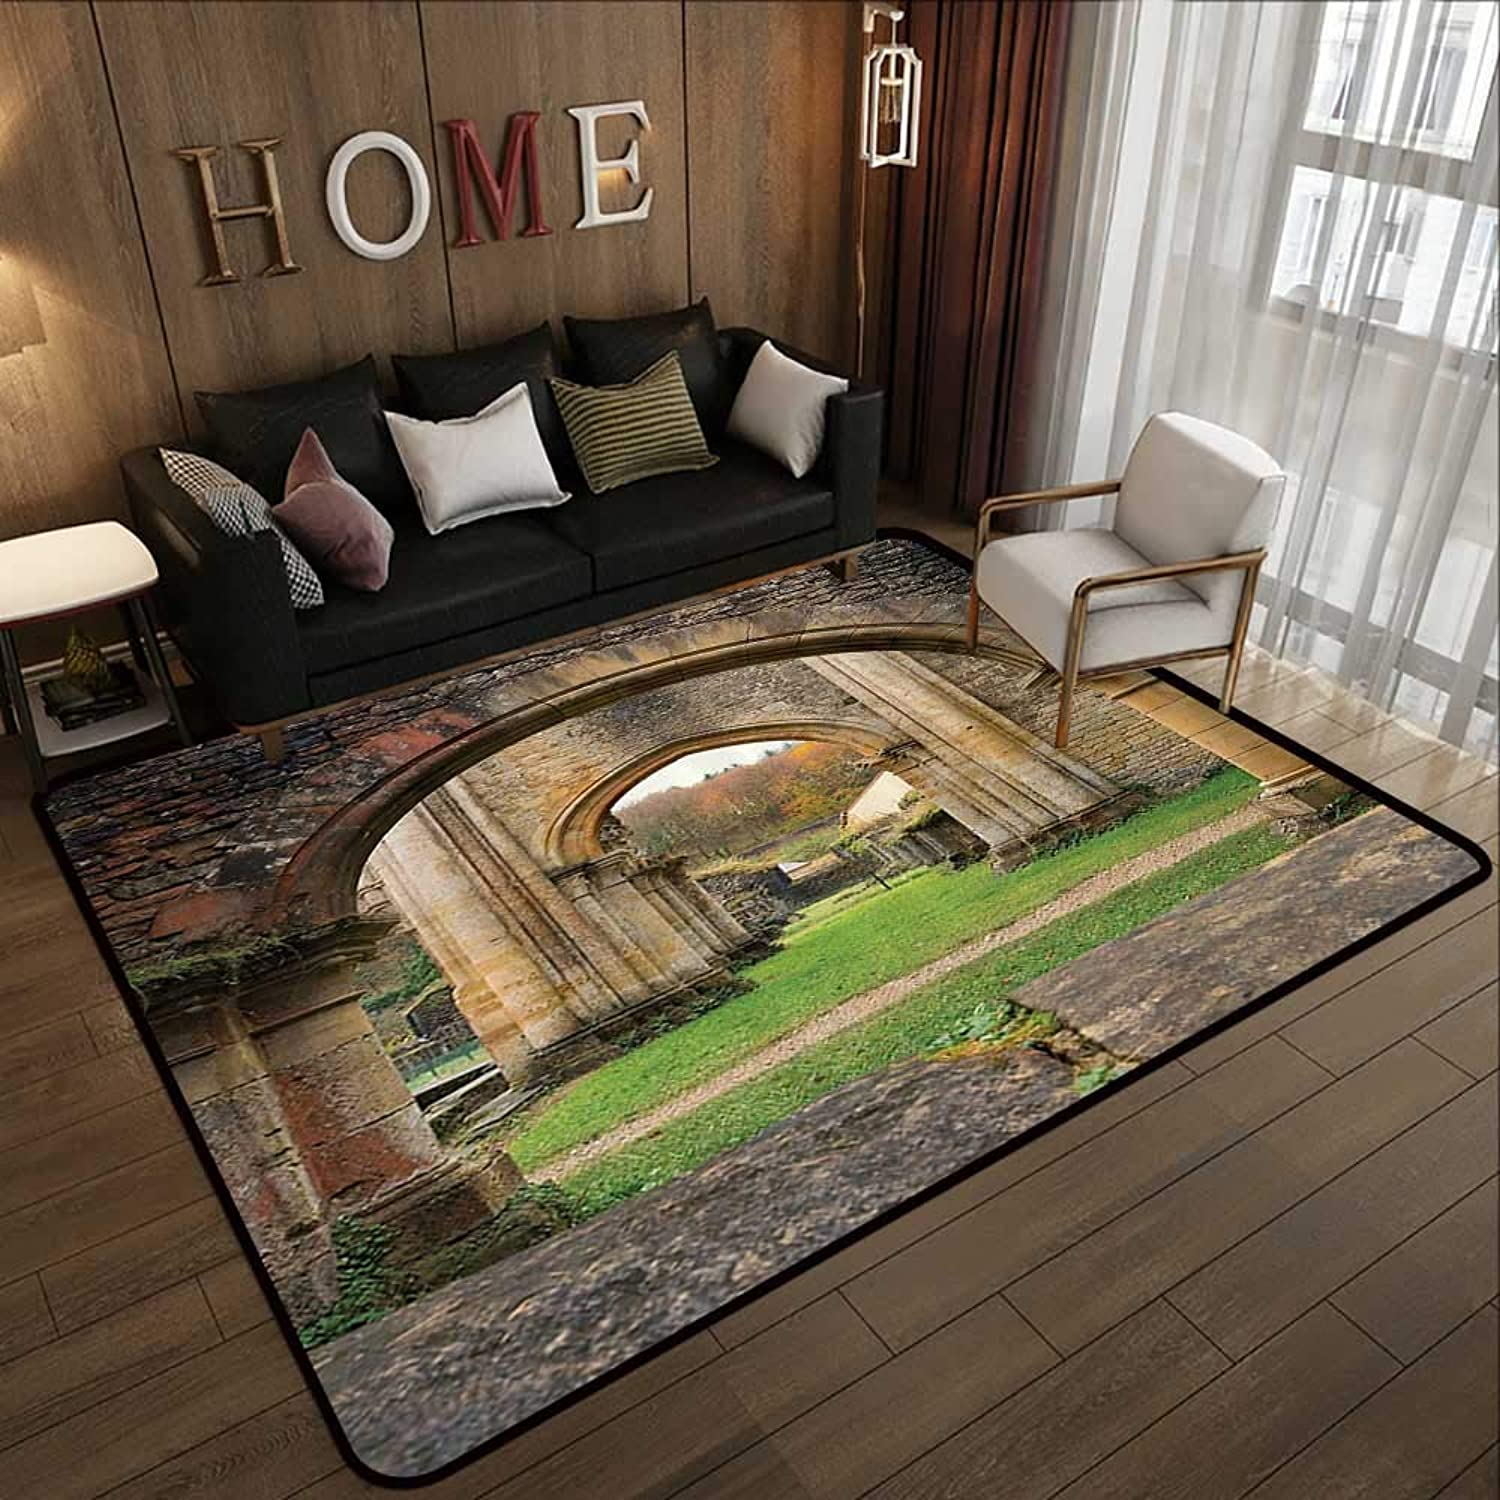 Carpet mat,Antique Decor,Autumn View on The Ancient Ruins of Famous Medieval Century in Belgium,Sand Brown Green 47 x 59  Floor Mat Entrance Doormat